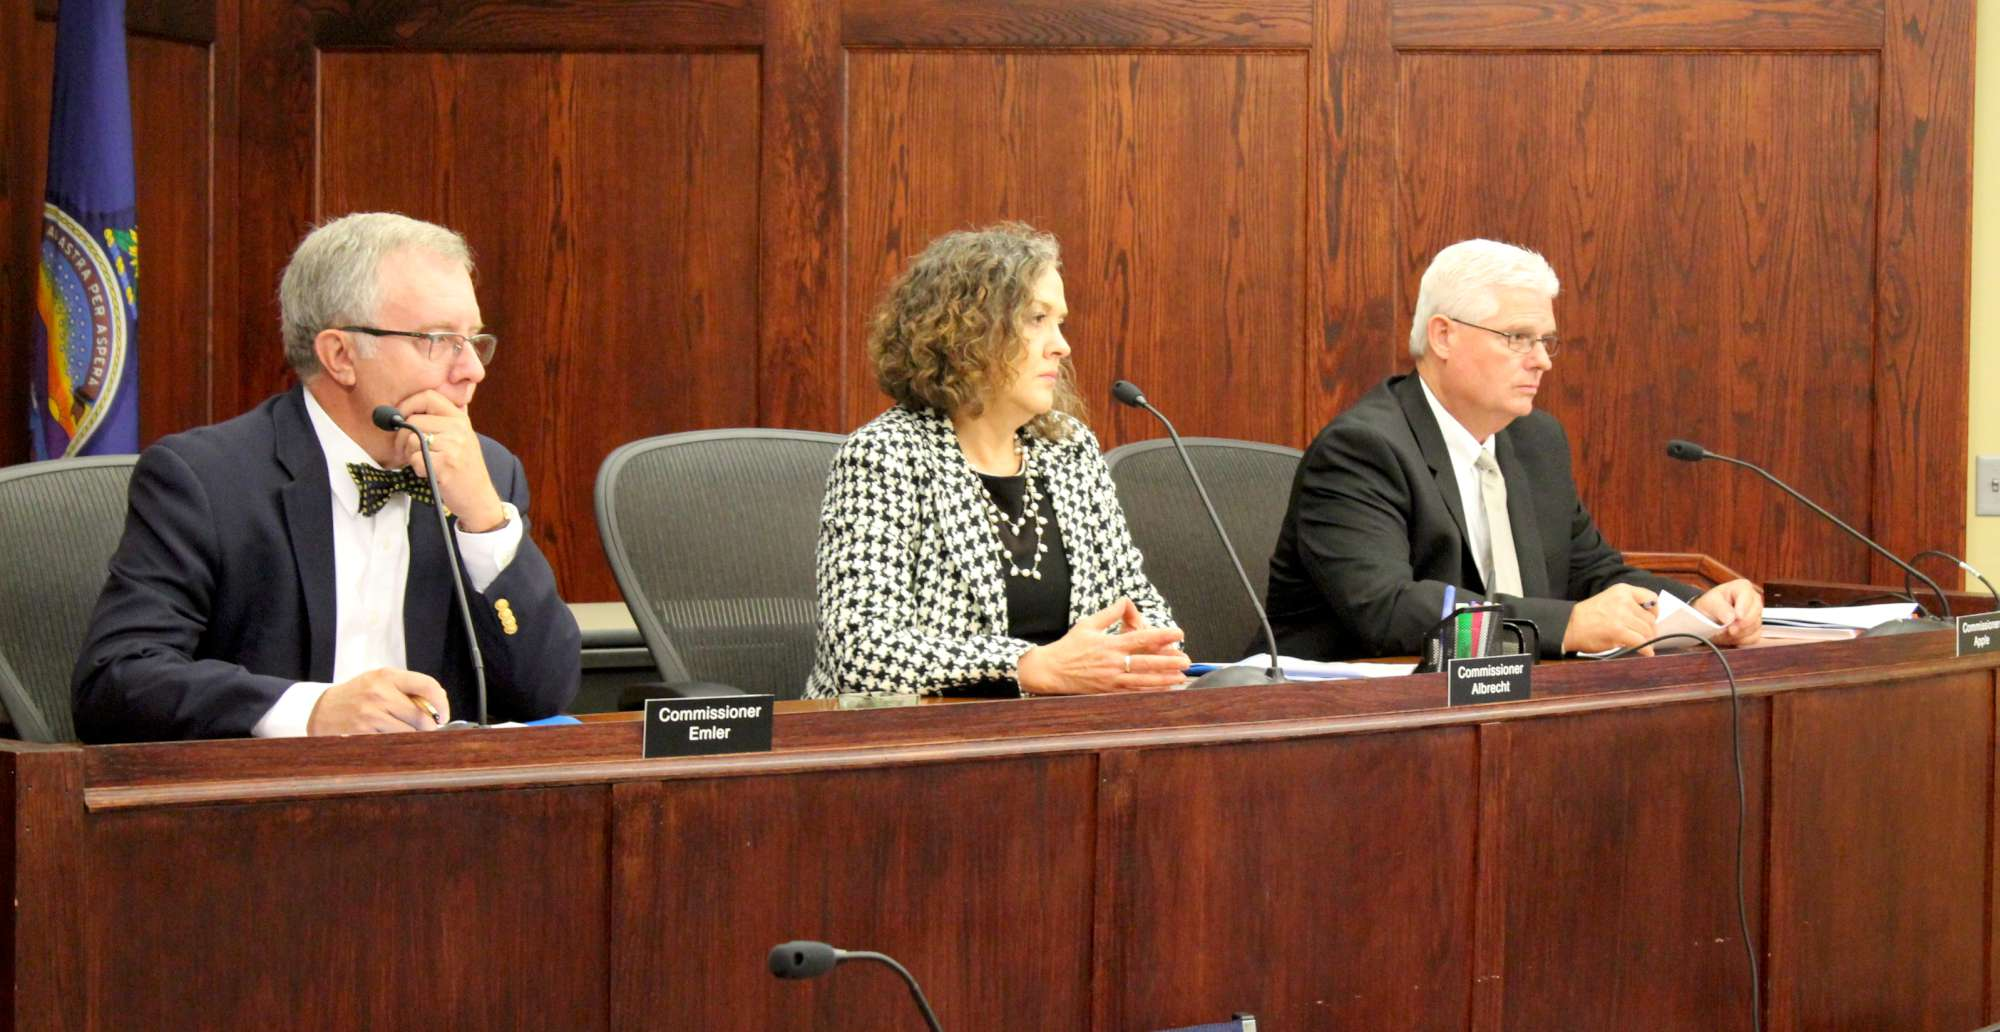 KCC commissioners during the meeting to approve the rate increase. (Photo by Stephen Koranda)